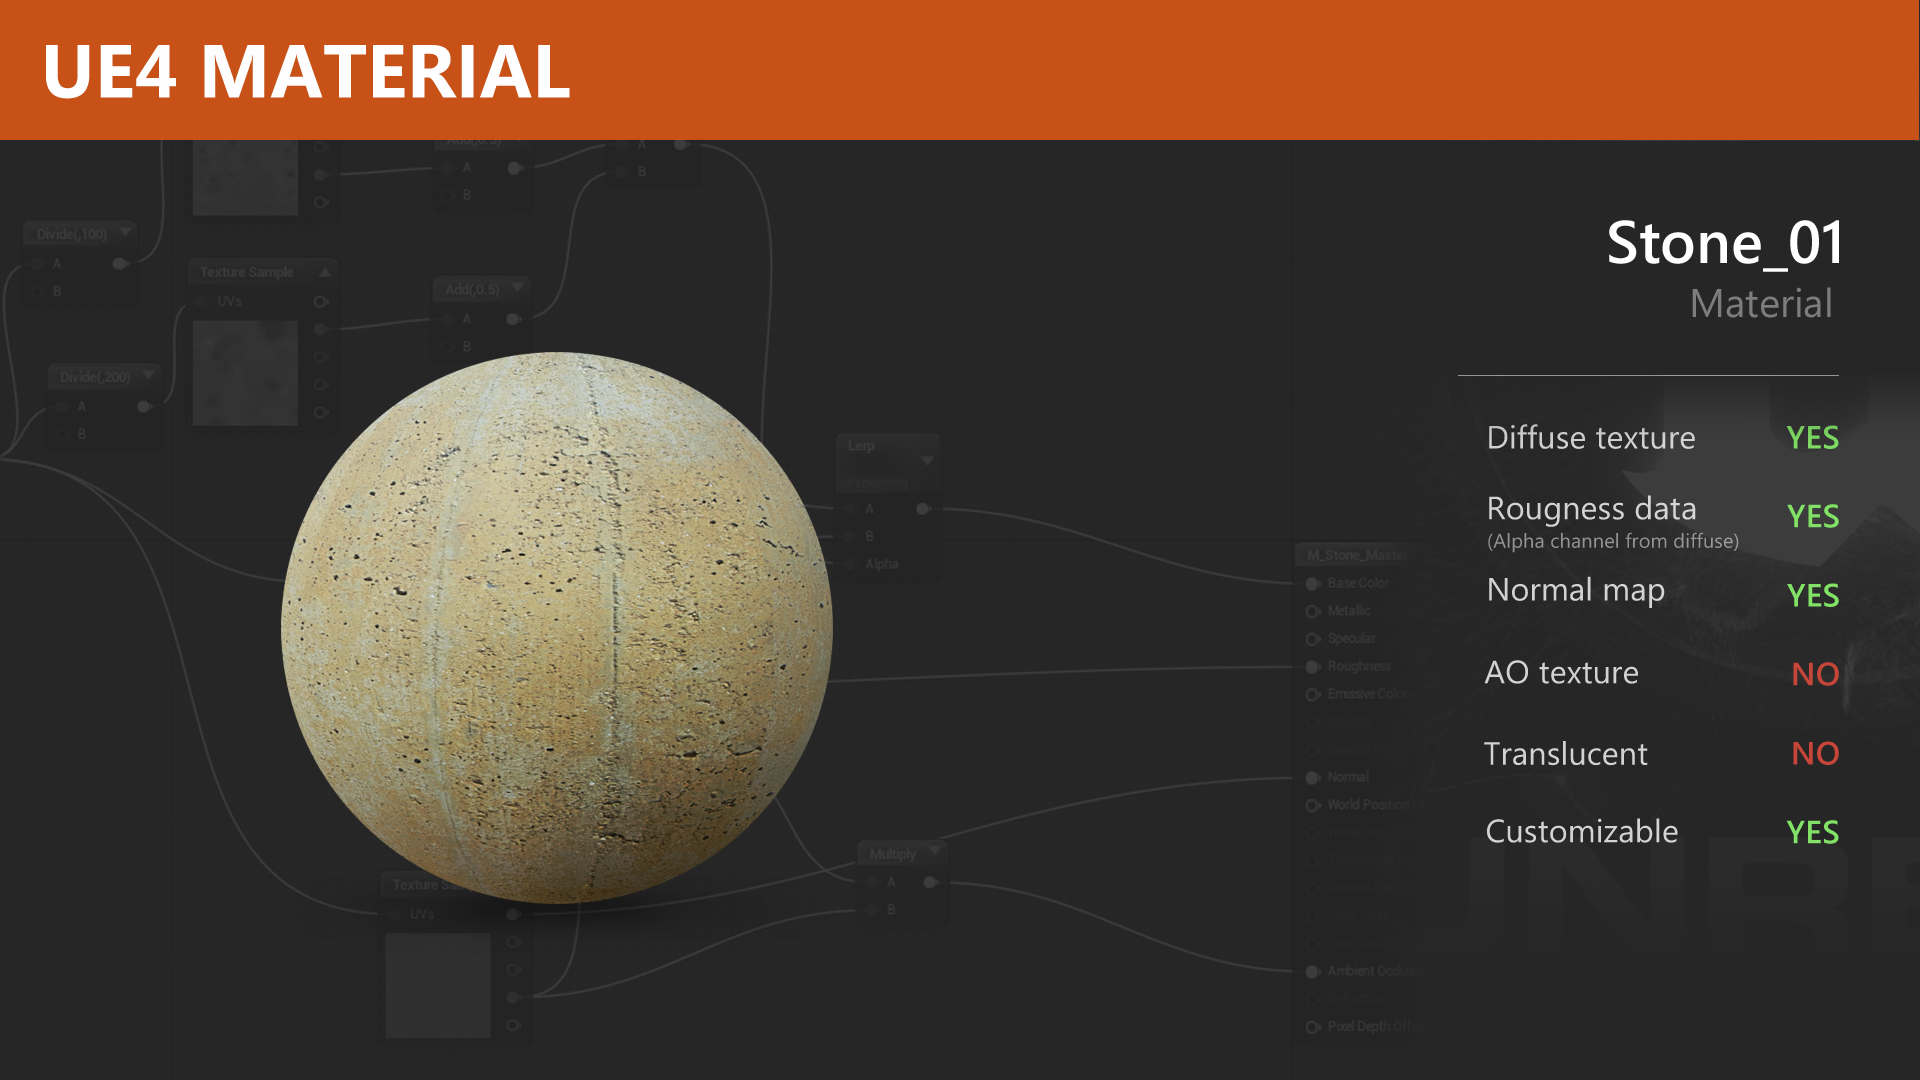 UE4 Material – Stone 01 | Unreal Engine 4 blog